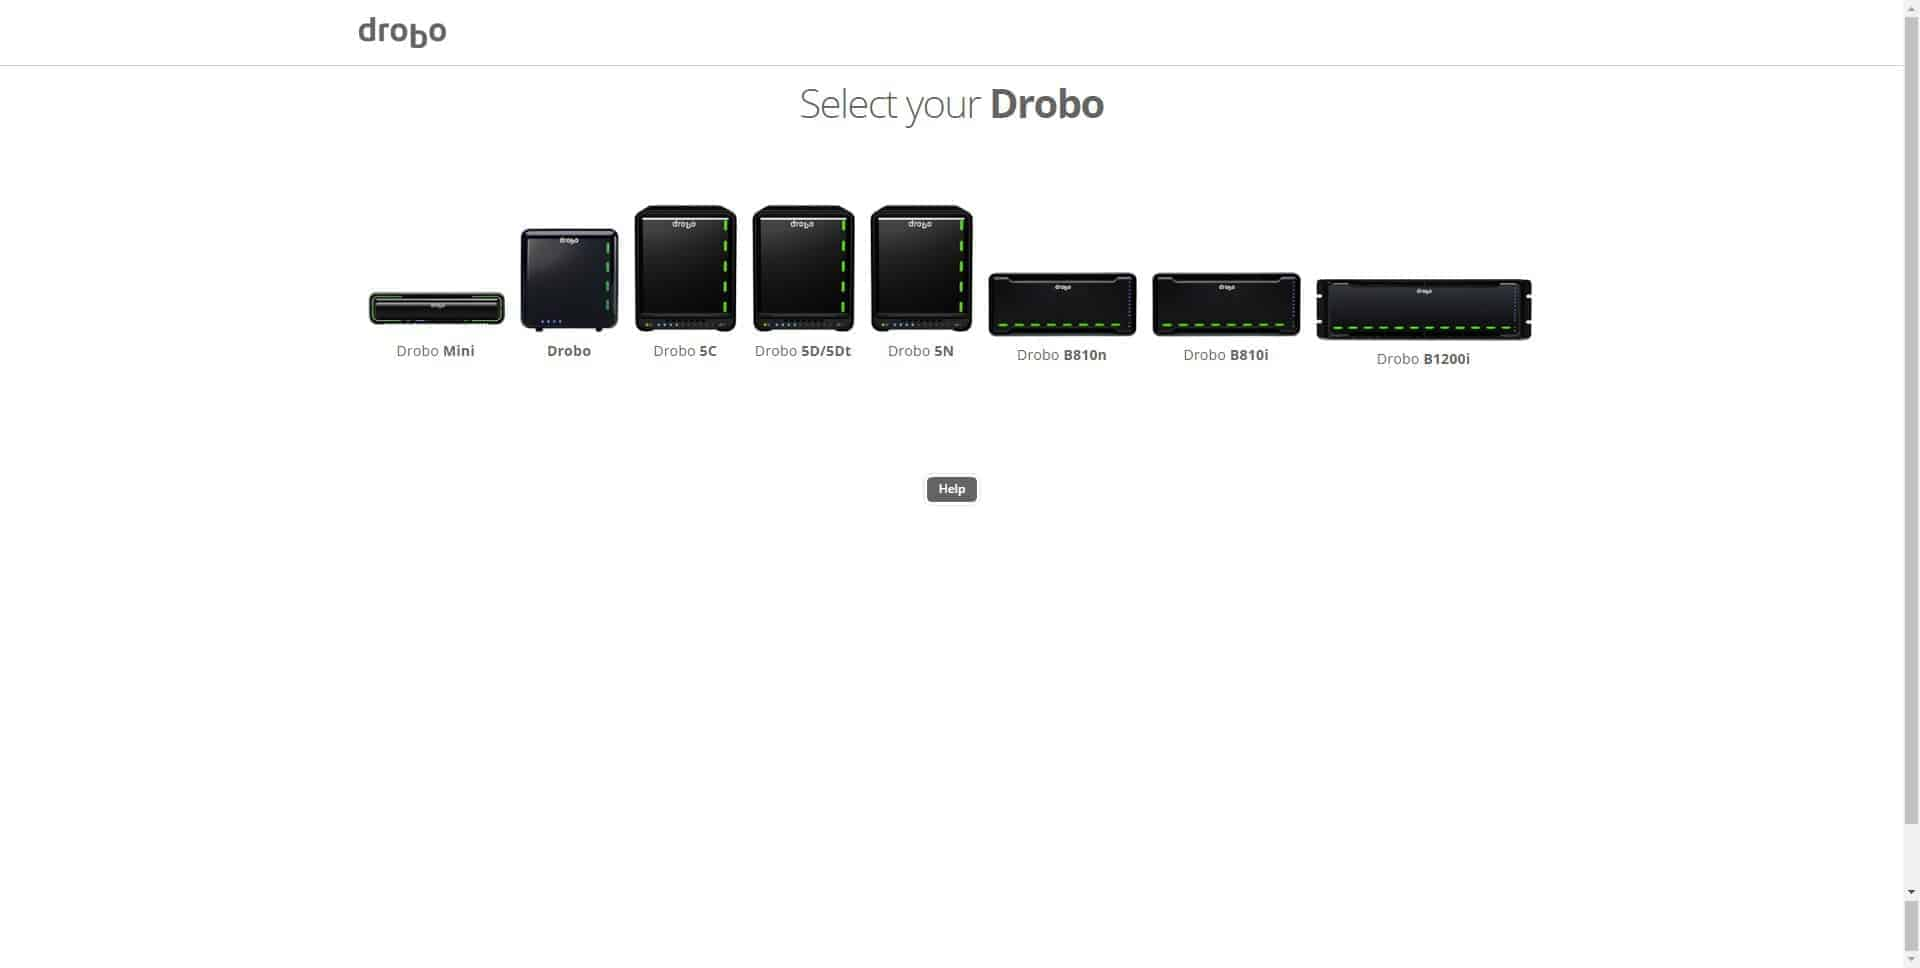 Drobo_5N_Screens-13 Drobo 5N 5 Bay NAS Review